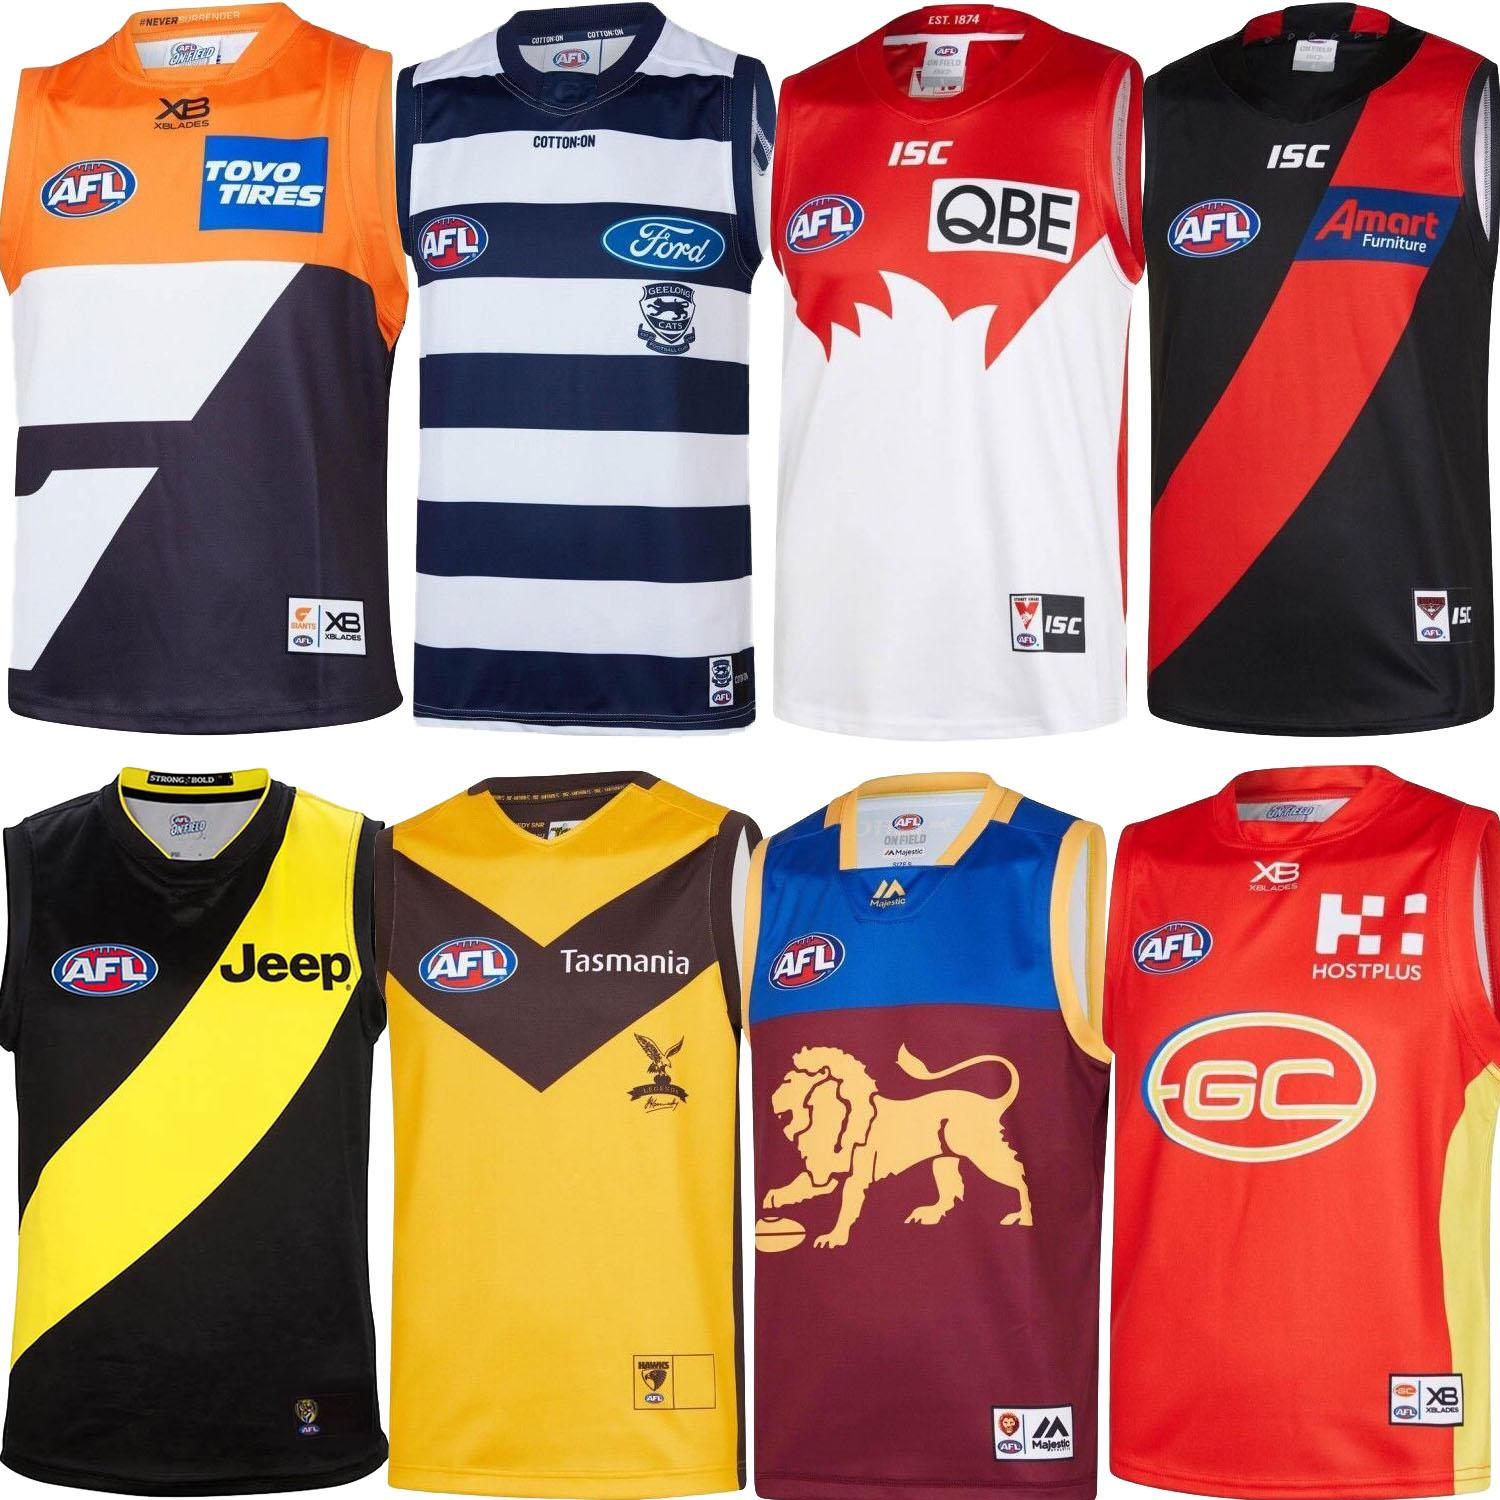 2020 2019 2020 All Afl Jersey Gws Giants Geelong Cats Essendon Bombers Adelaide Crows Collingwood Guernsey 19 20 Rugby Jerseys League Singlet From Soccer Quality 17 36 Dhgate Com